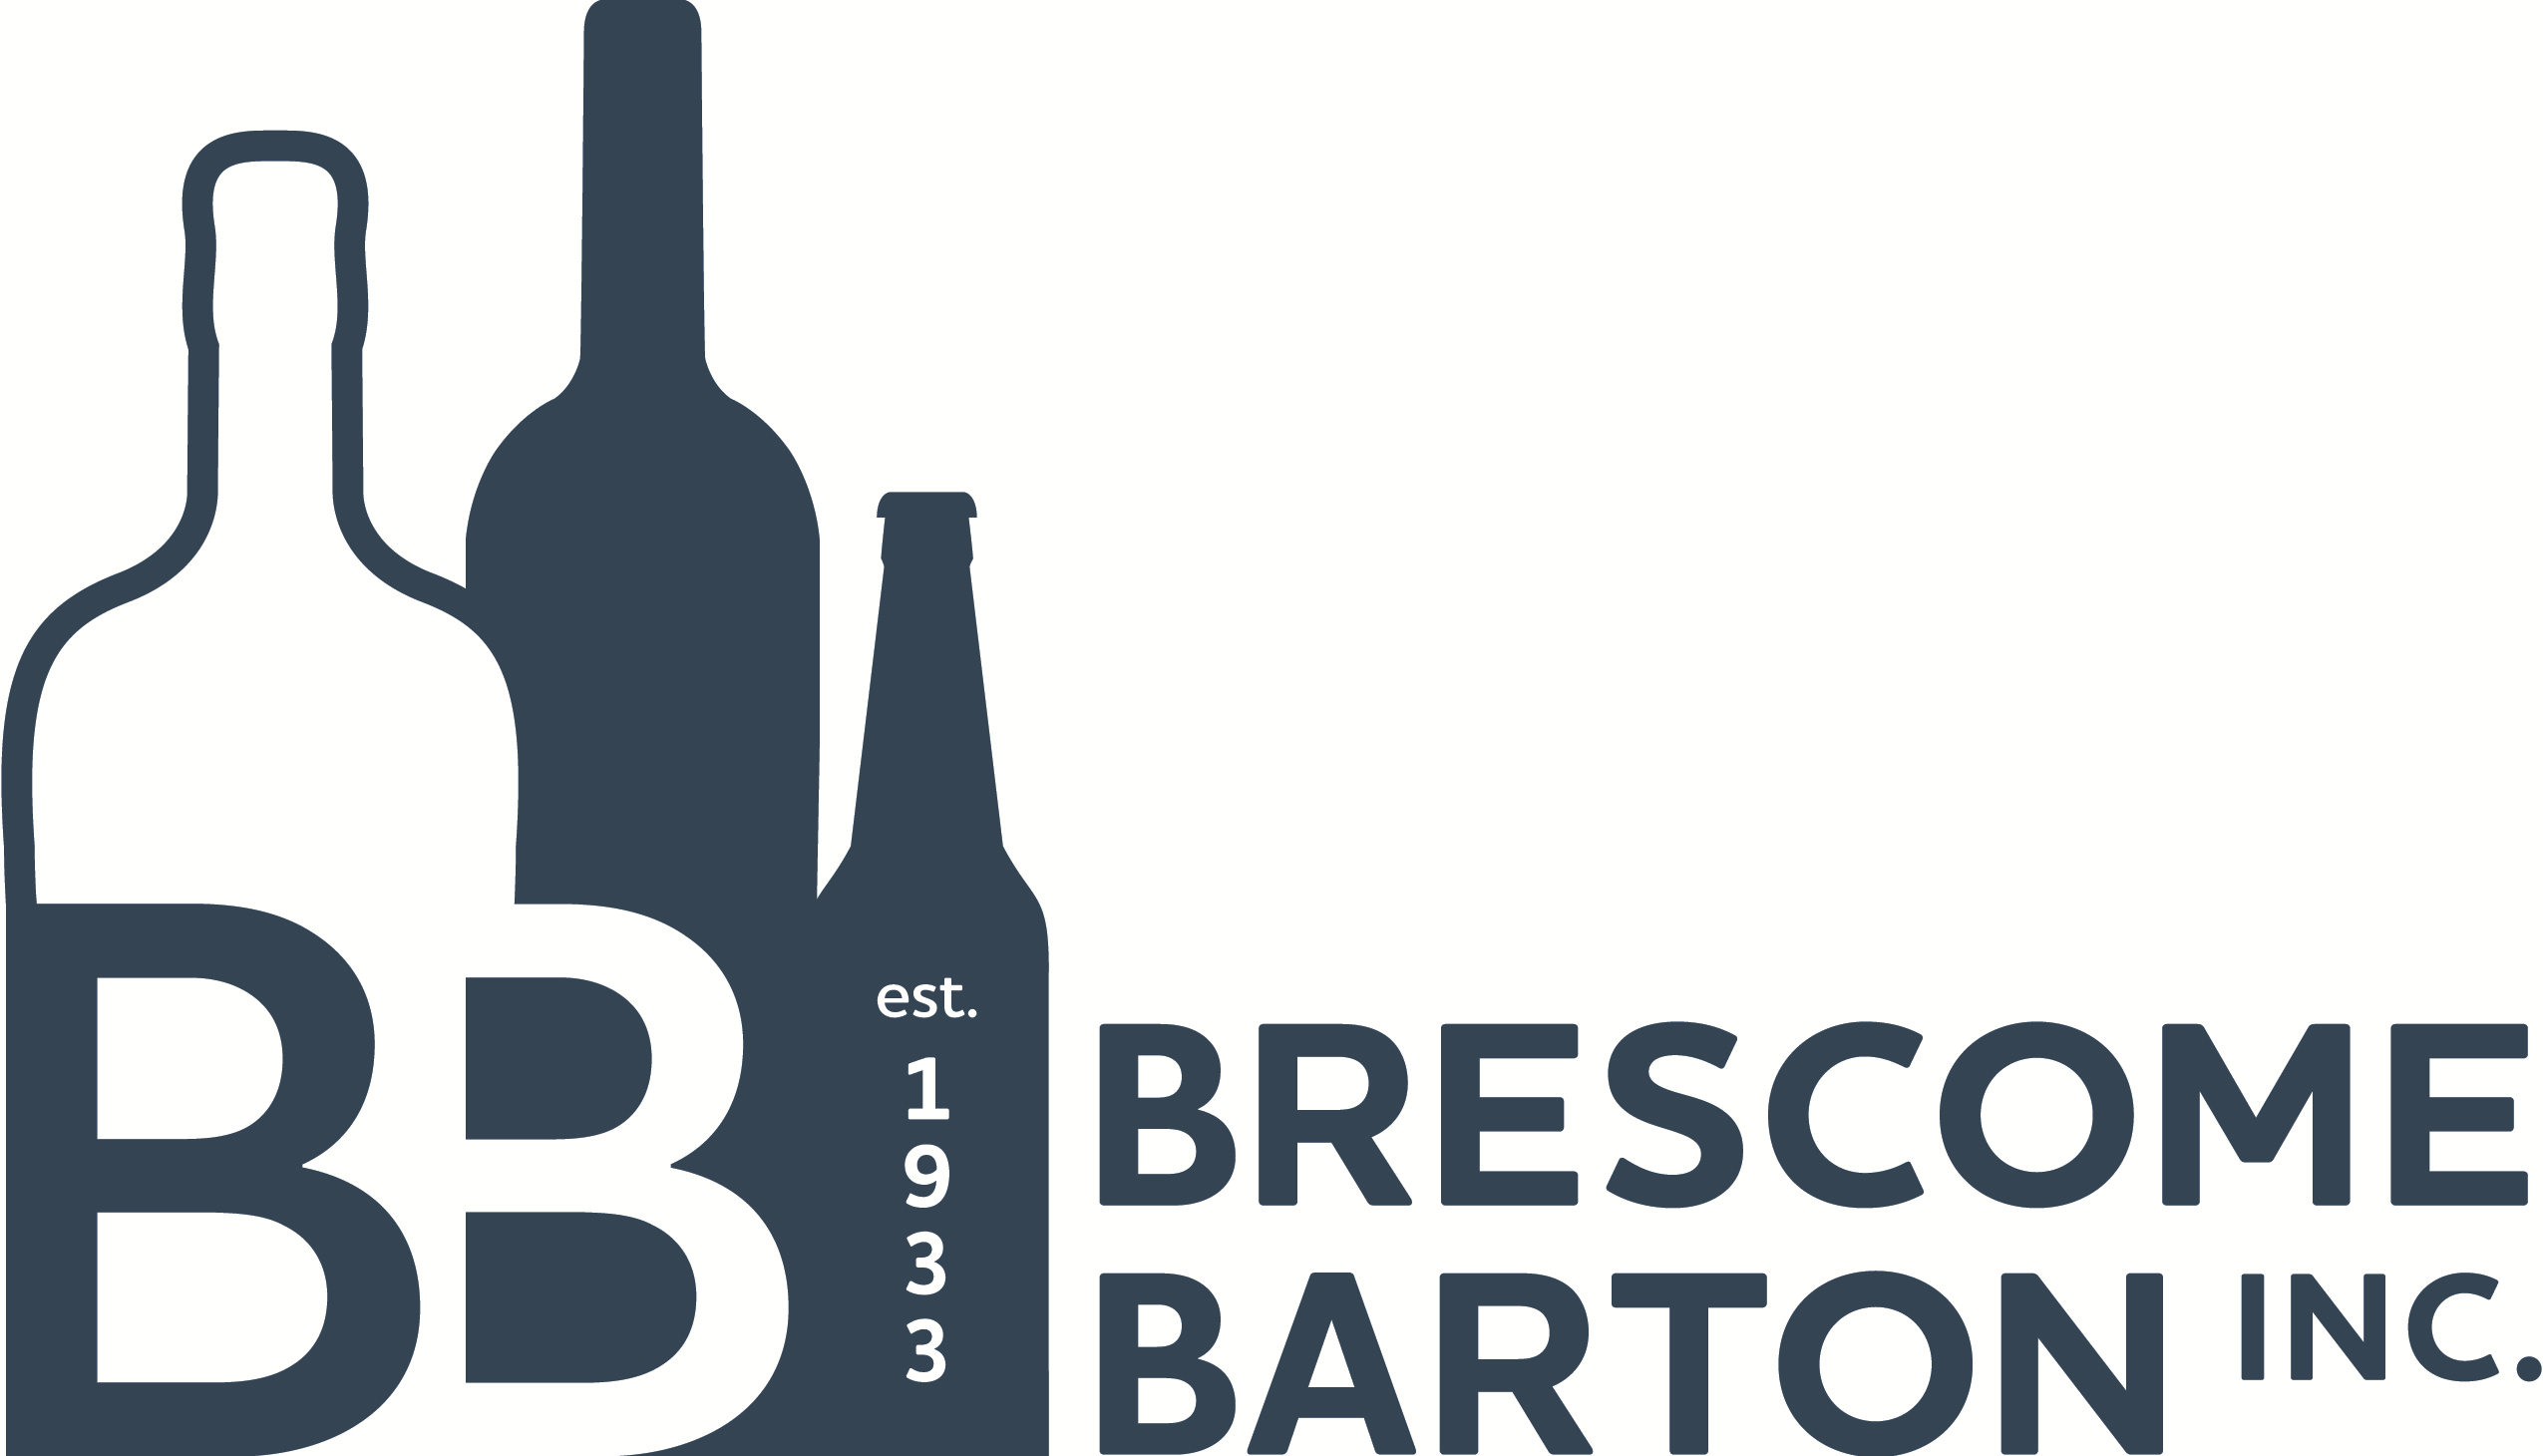 September 16, 2019: Brescome Barton/Worldwide Wines MC-LEF Charity Golf Outing